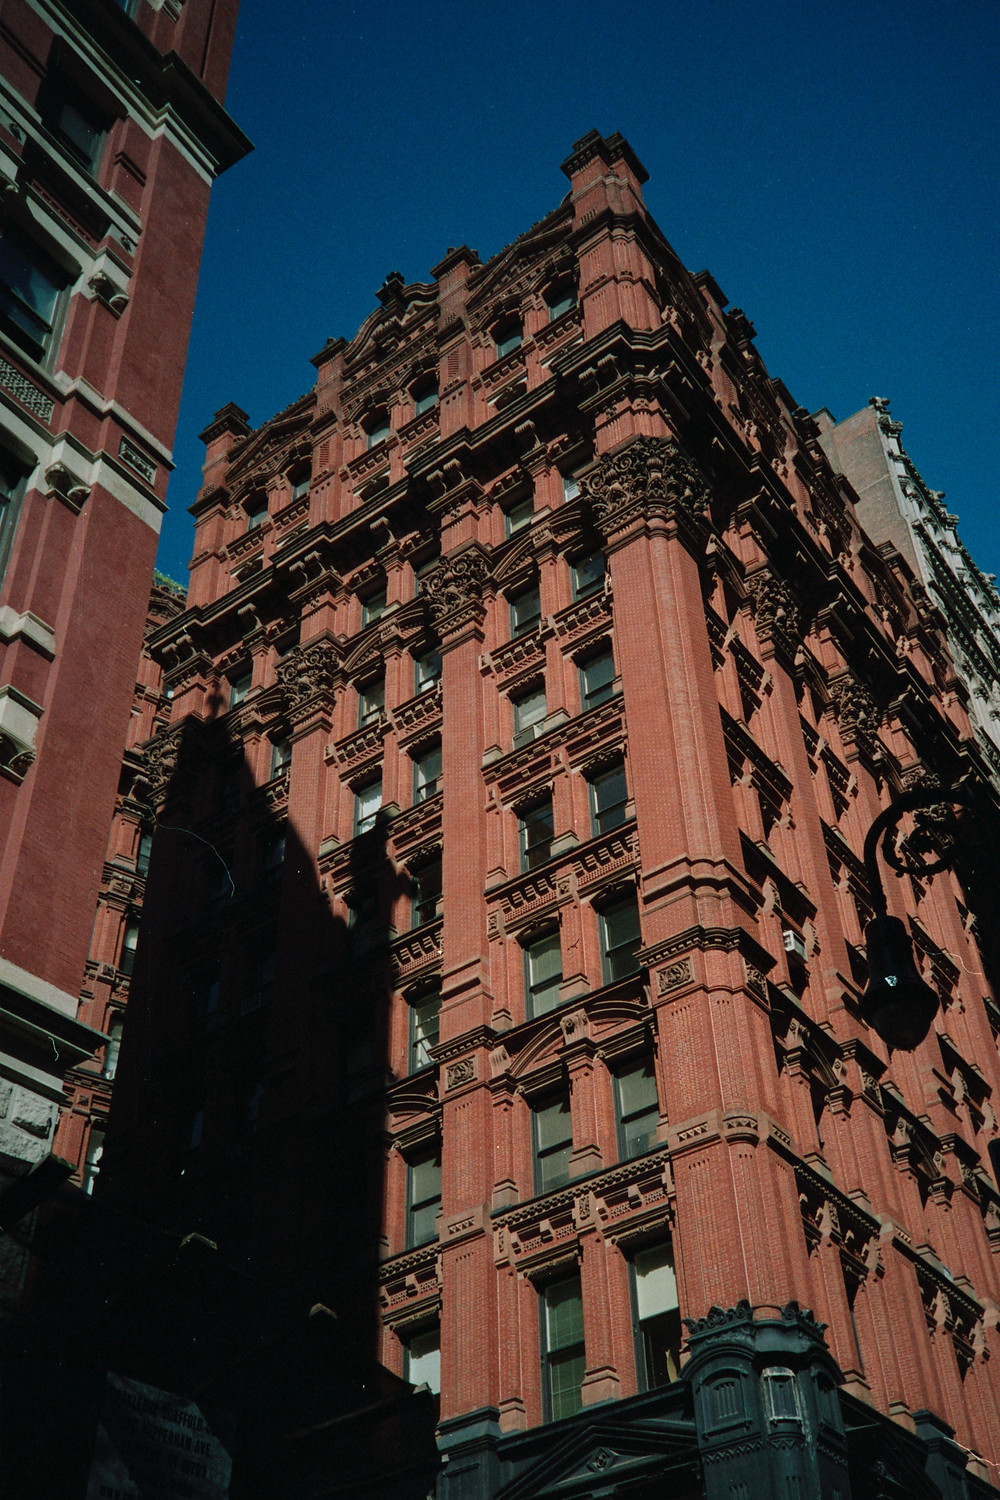 This is an image of an apartment building.